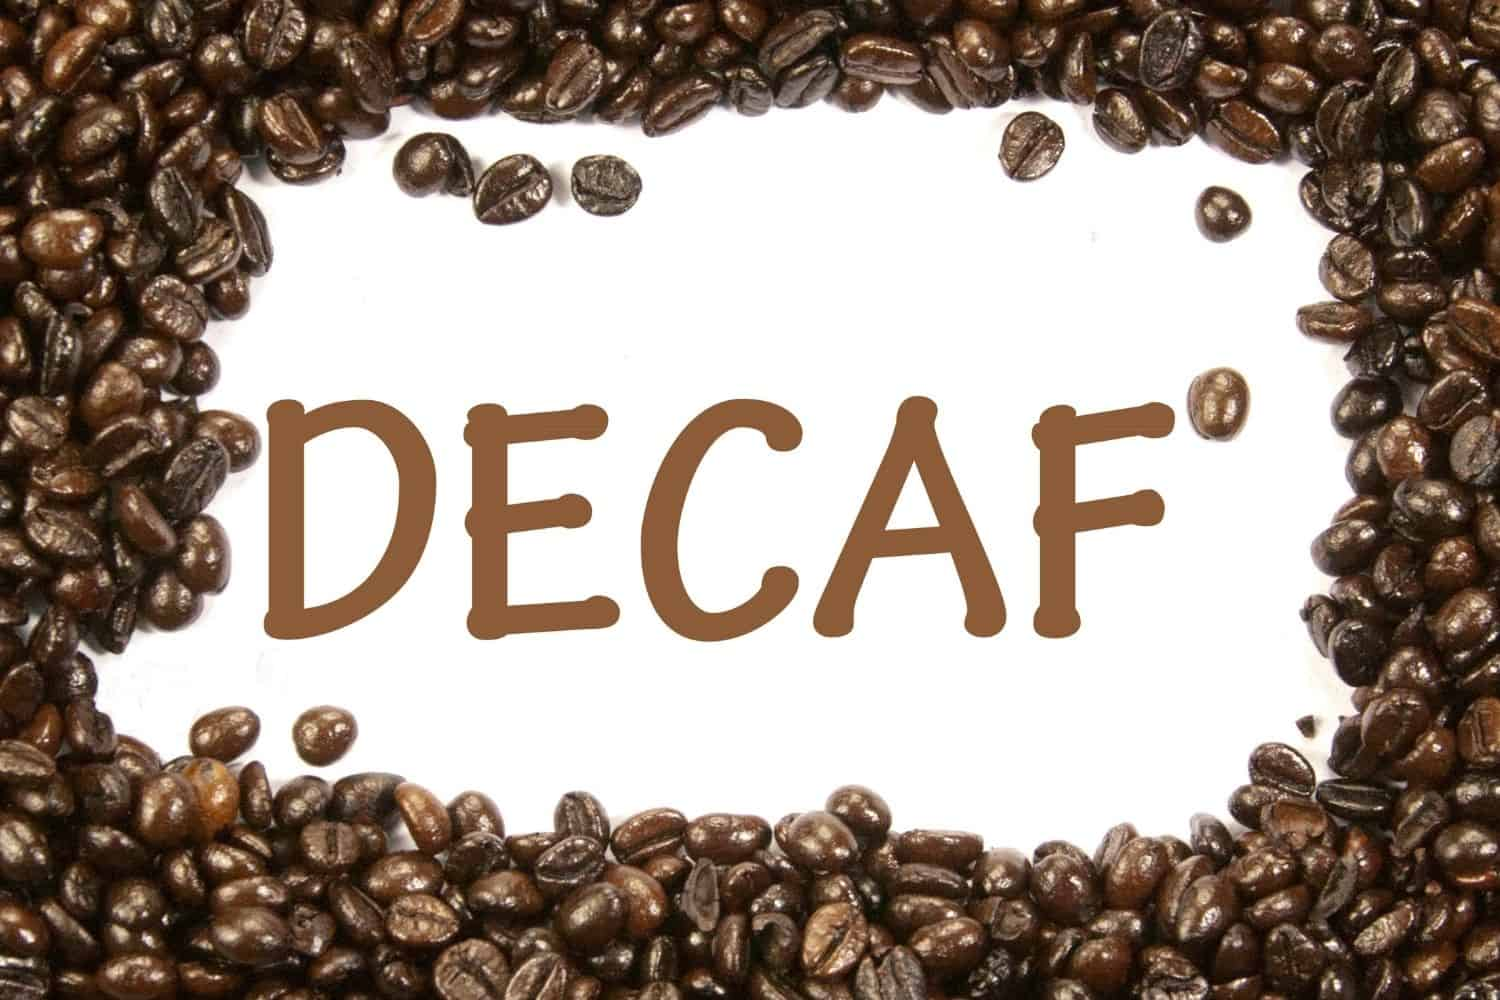 does decaf coffee dehydrate you?